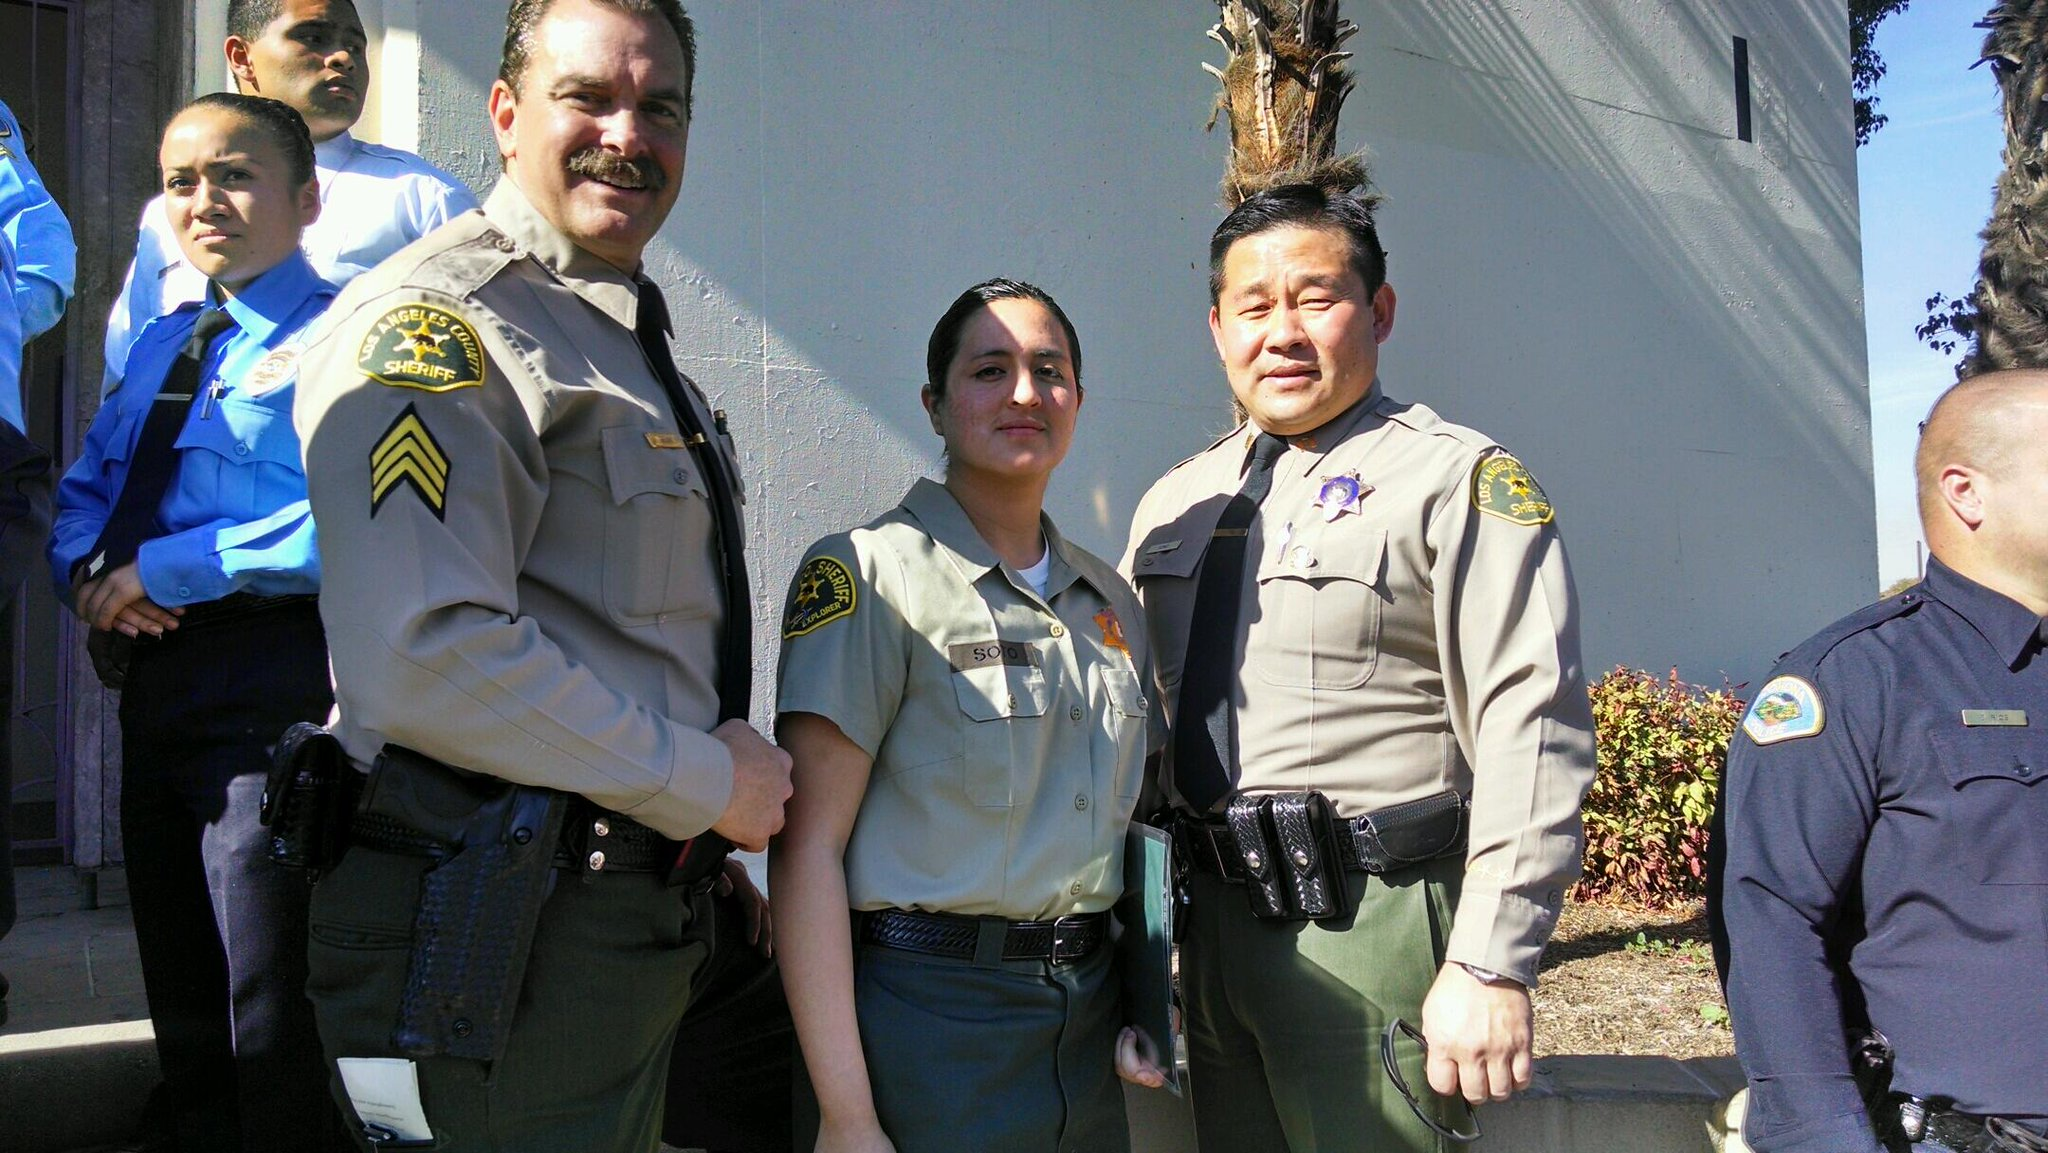 lasd crescentavalley on twitter   u0026quot cv explorer soto with